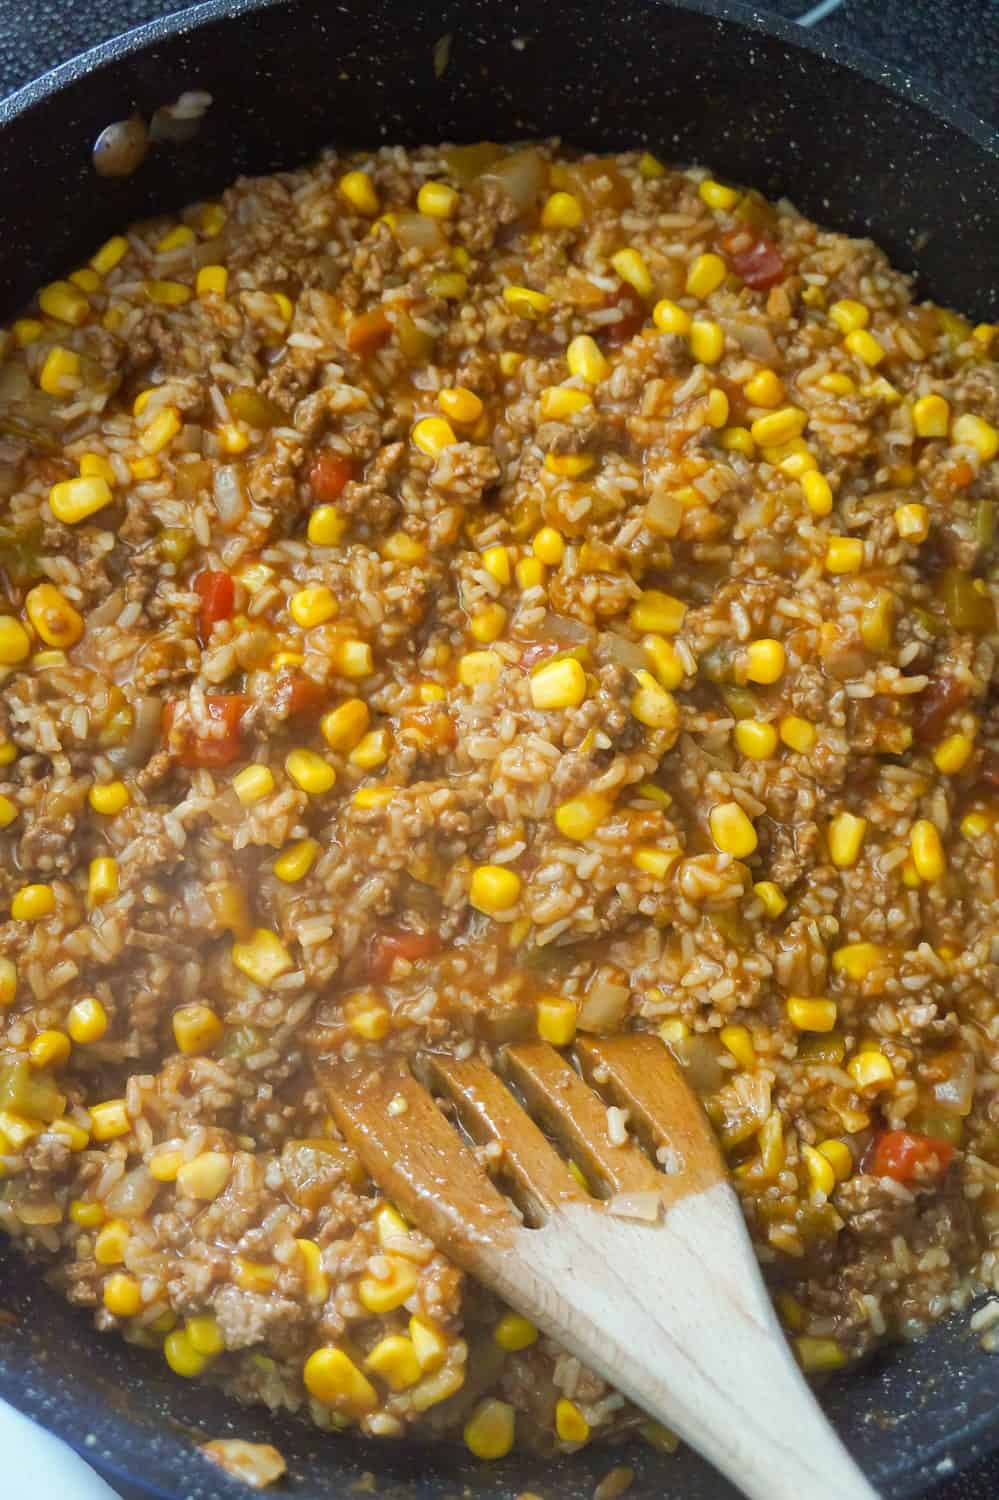 corn, ground beef and rice mixture